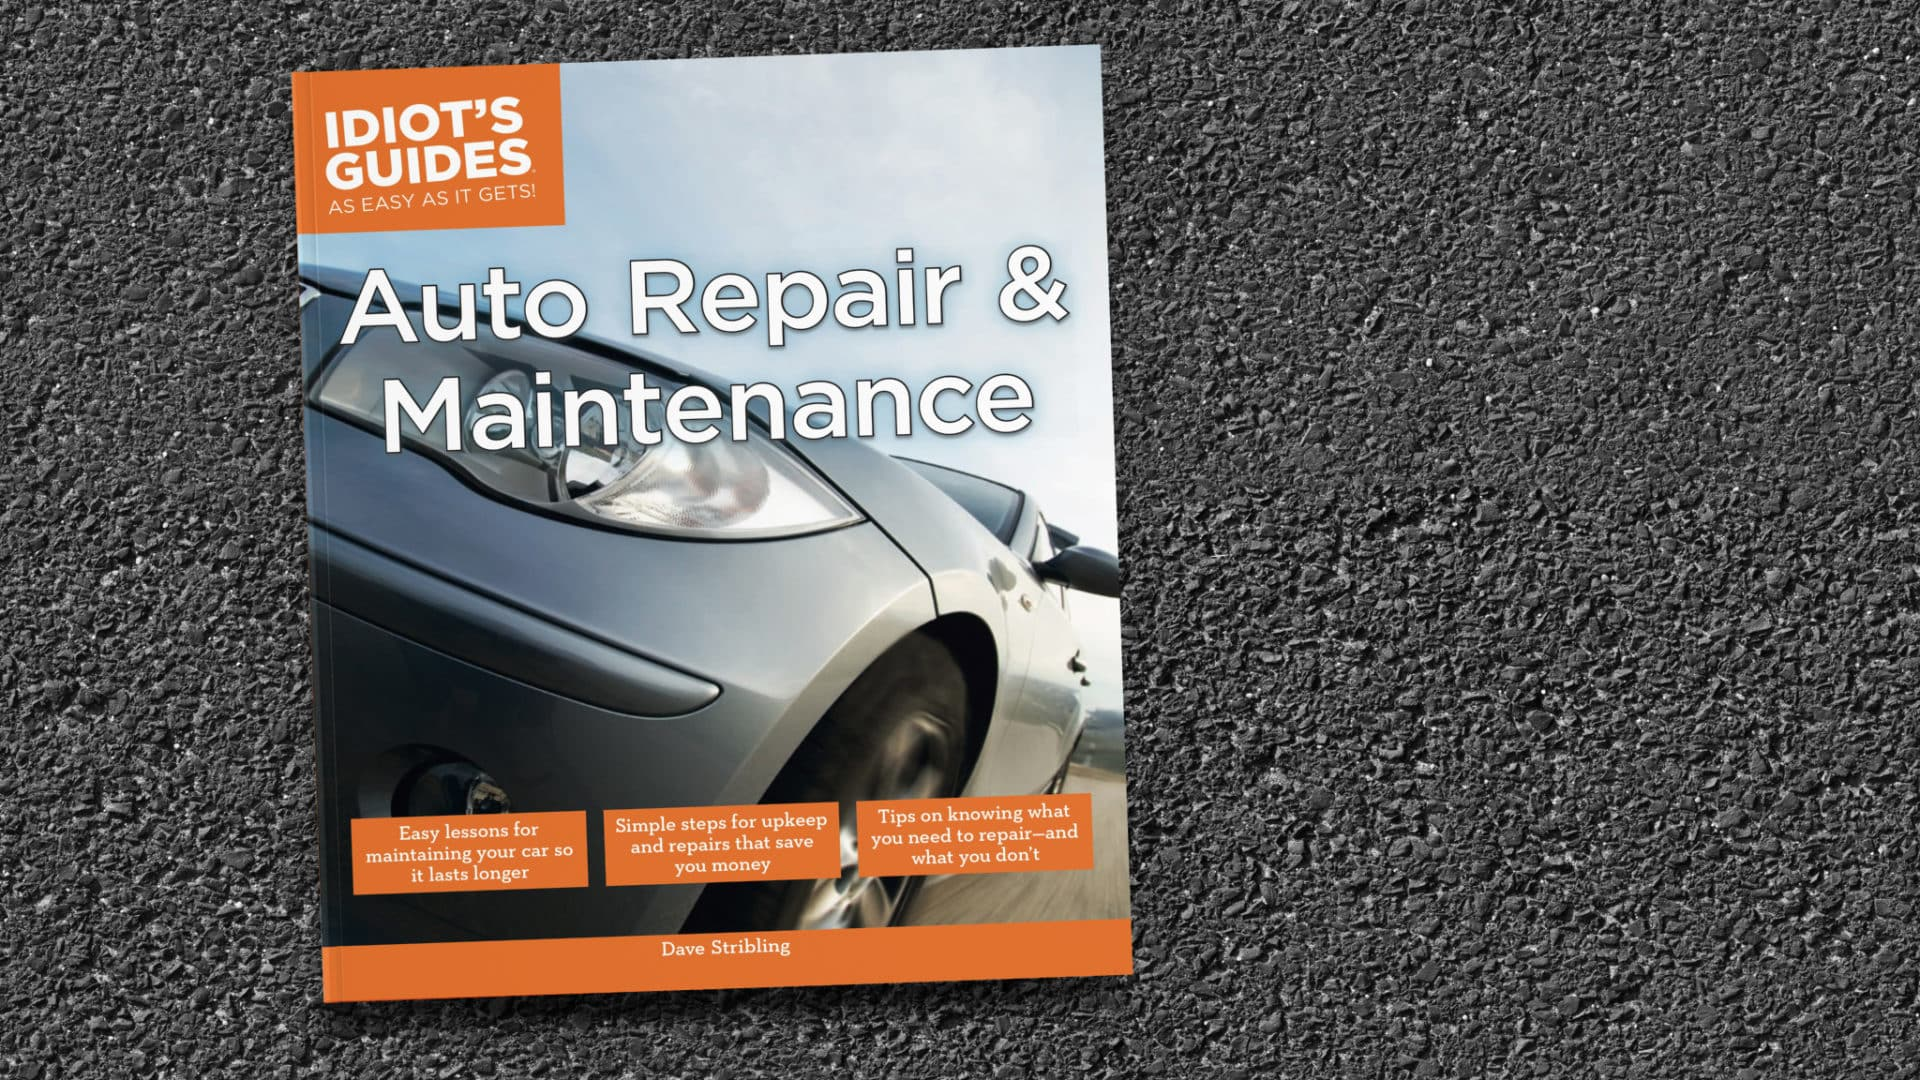 Idiot's Guides: Auto Repair and Maintenance - cover banner